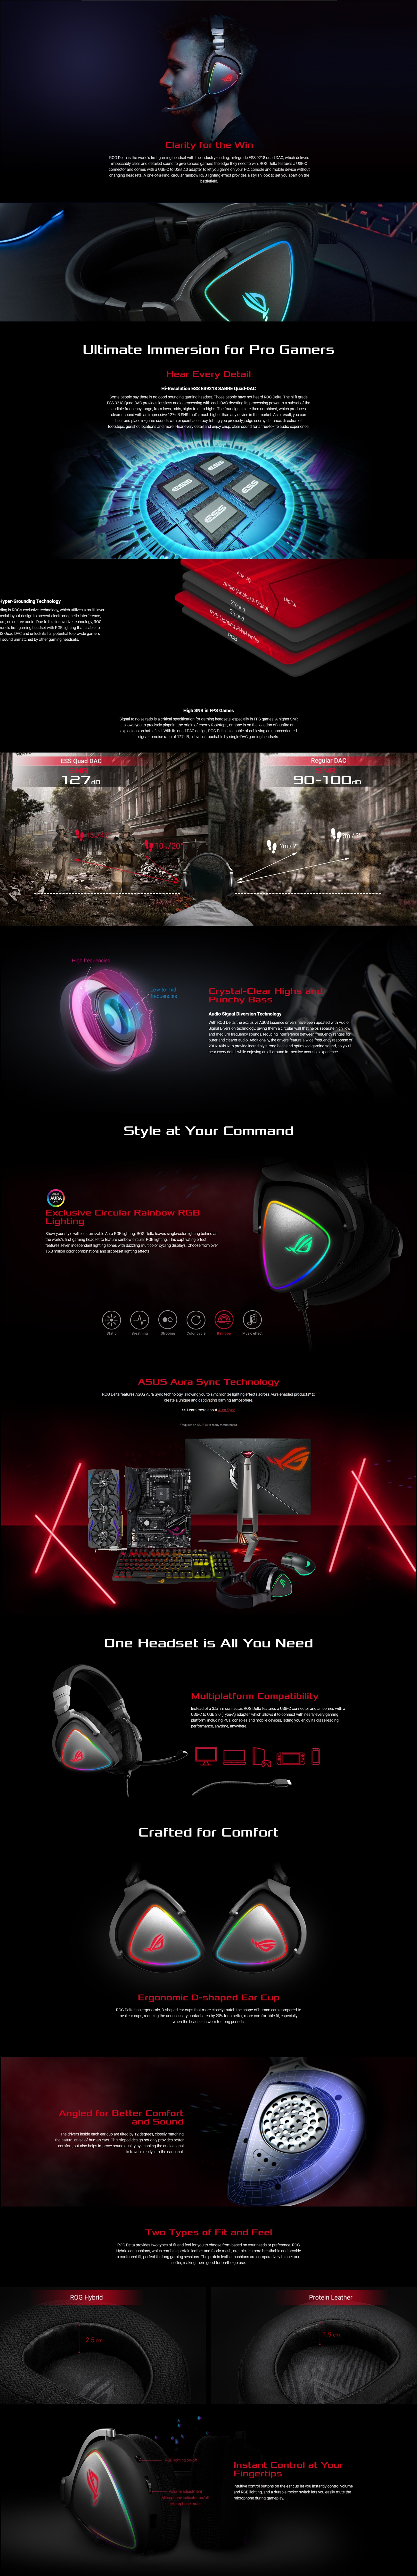 A large marketing image providing additional information about the product ASUS ROG Delta RGB USB-C Gaming Headset - Additional alt info not provided